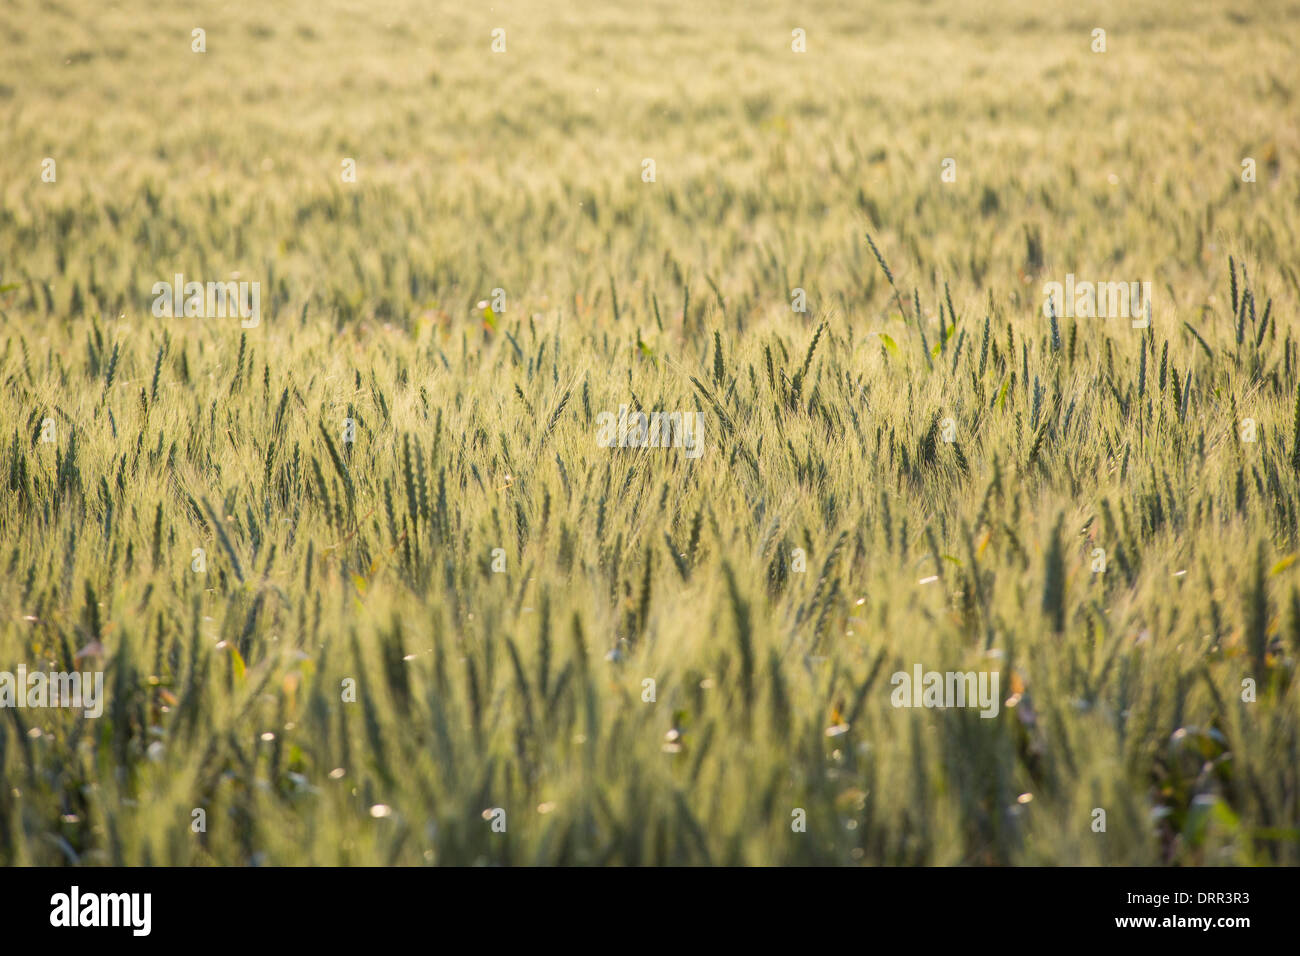 Fields of wheat in warm afternoon light, growing near Griffith, NSW, Australia - Stock Image